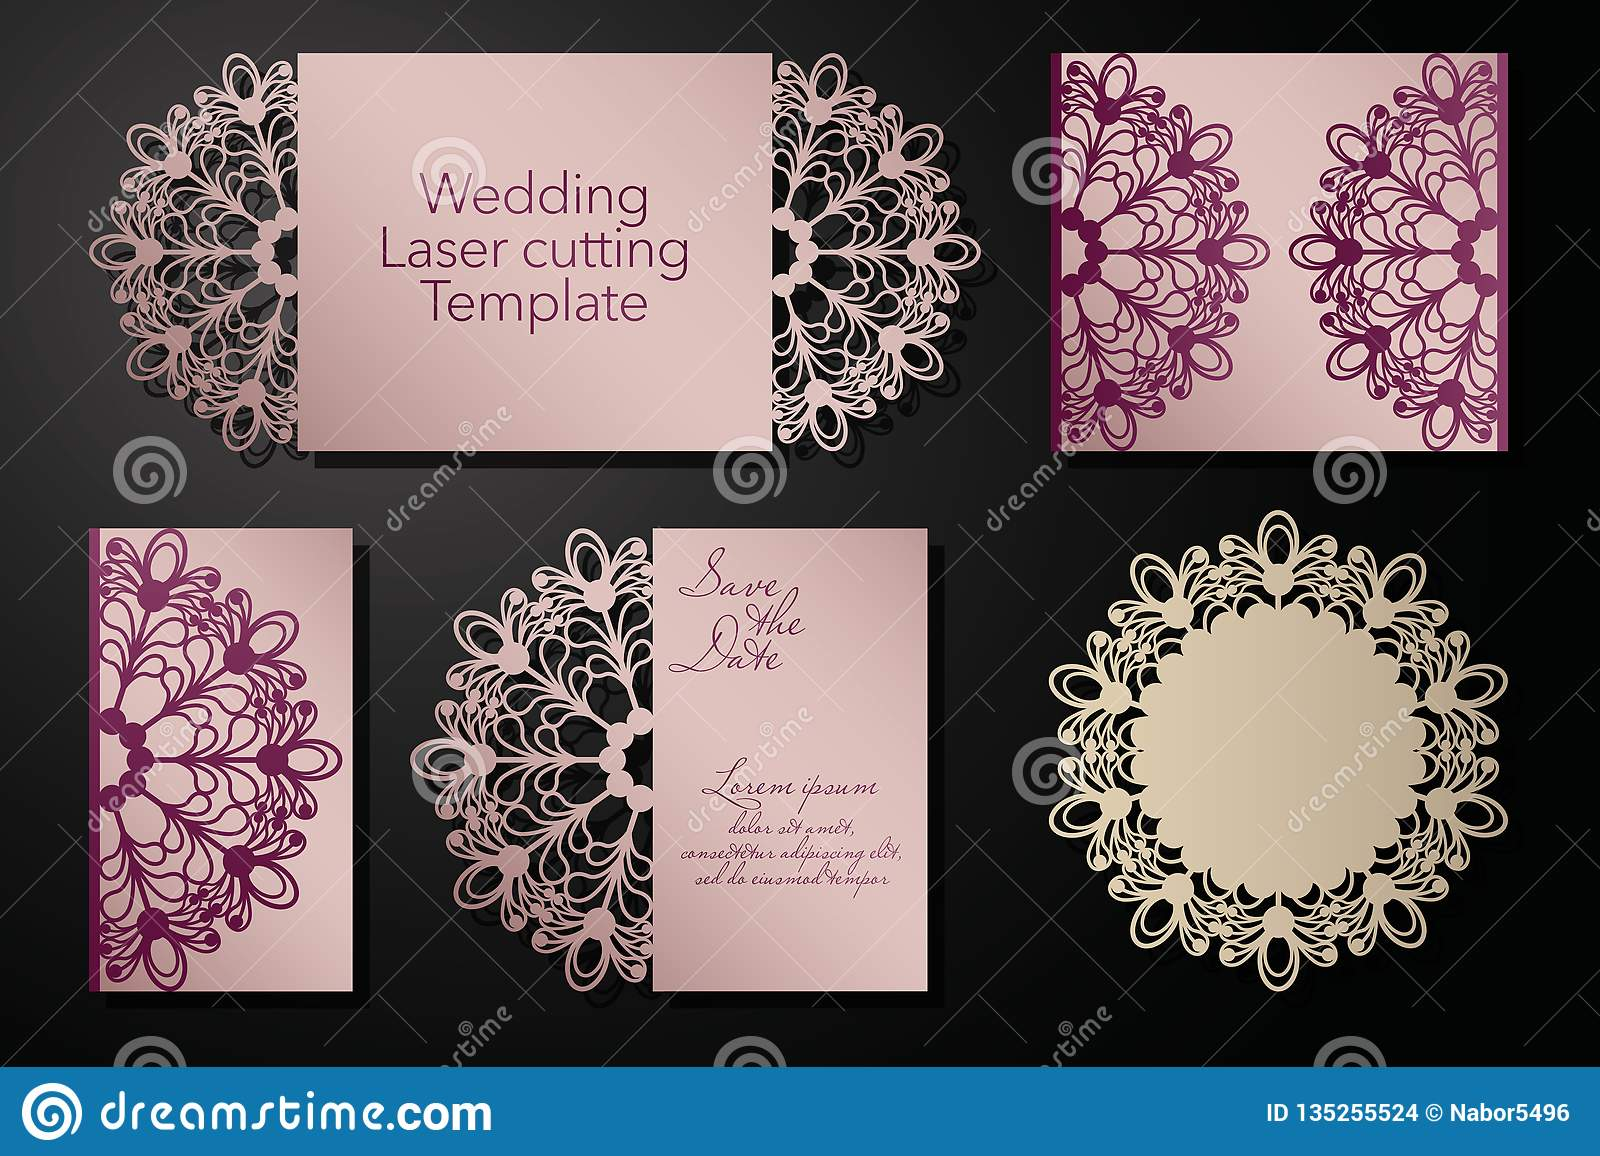 Laser cutting of a wedding envelope, greeting card, invitation. Radial ornament. Vector.